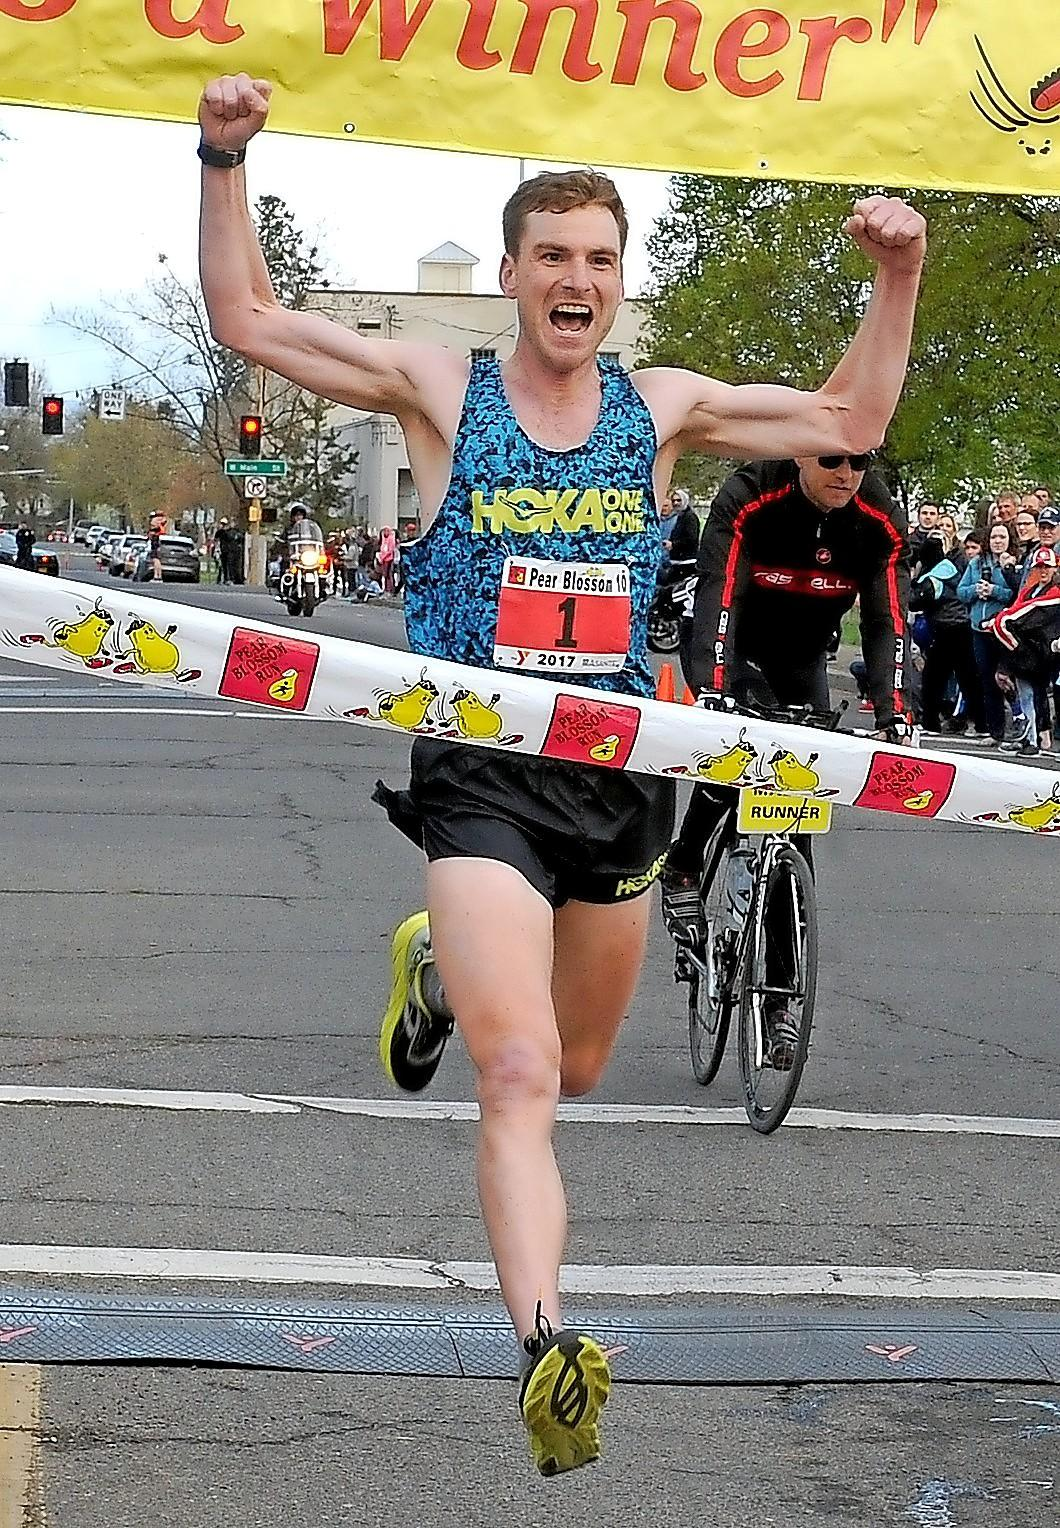 Denise Baratta / MT File Photo Cole Watson is the First place men's finisher of the Pear Blossom Run in 2017.